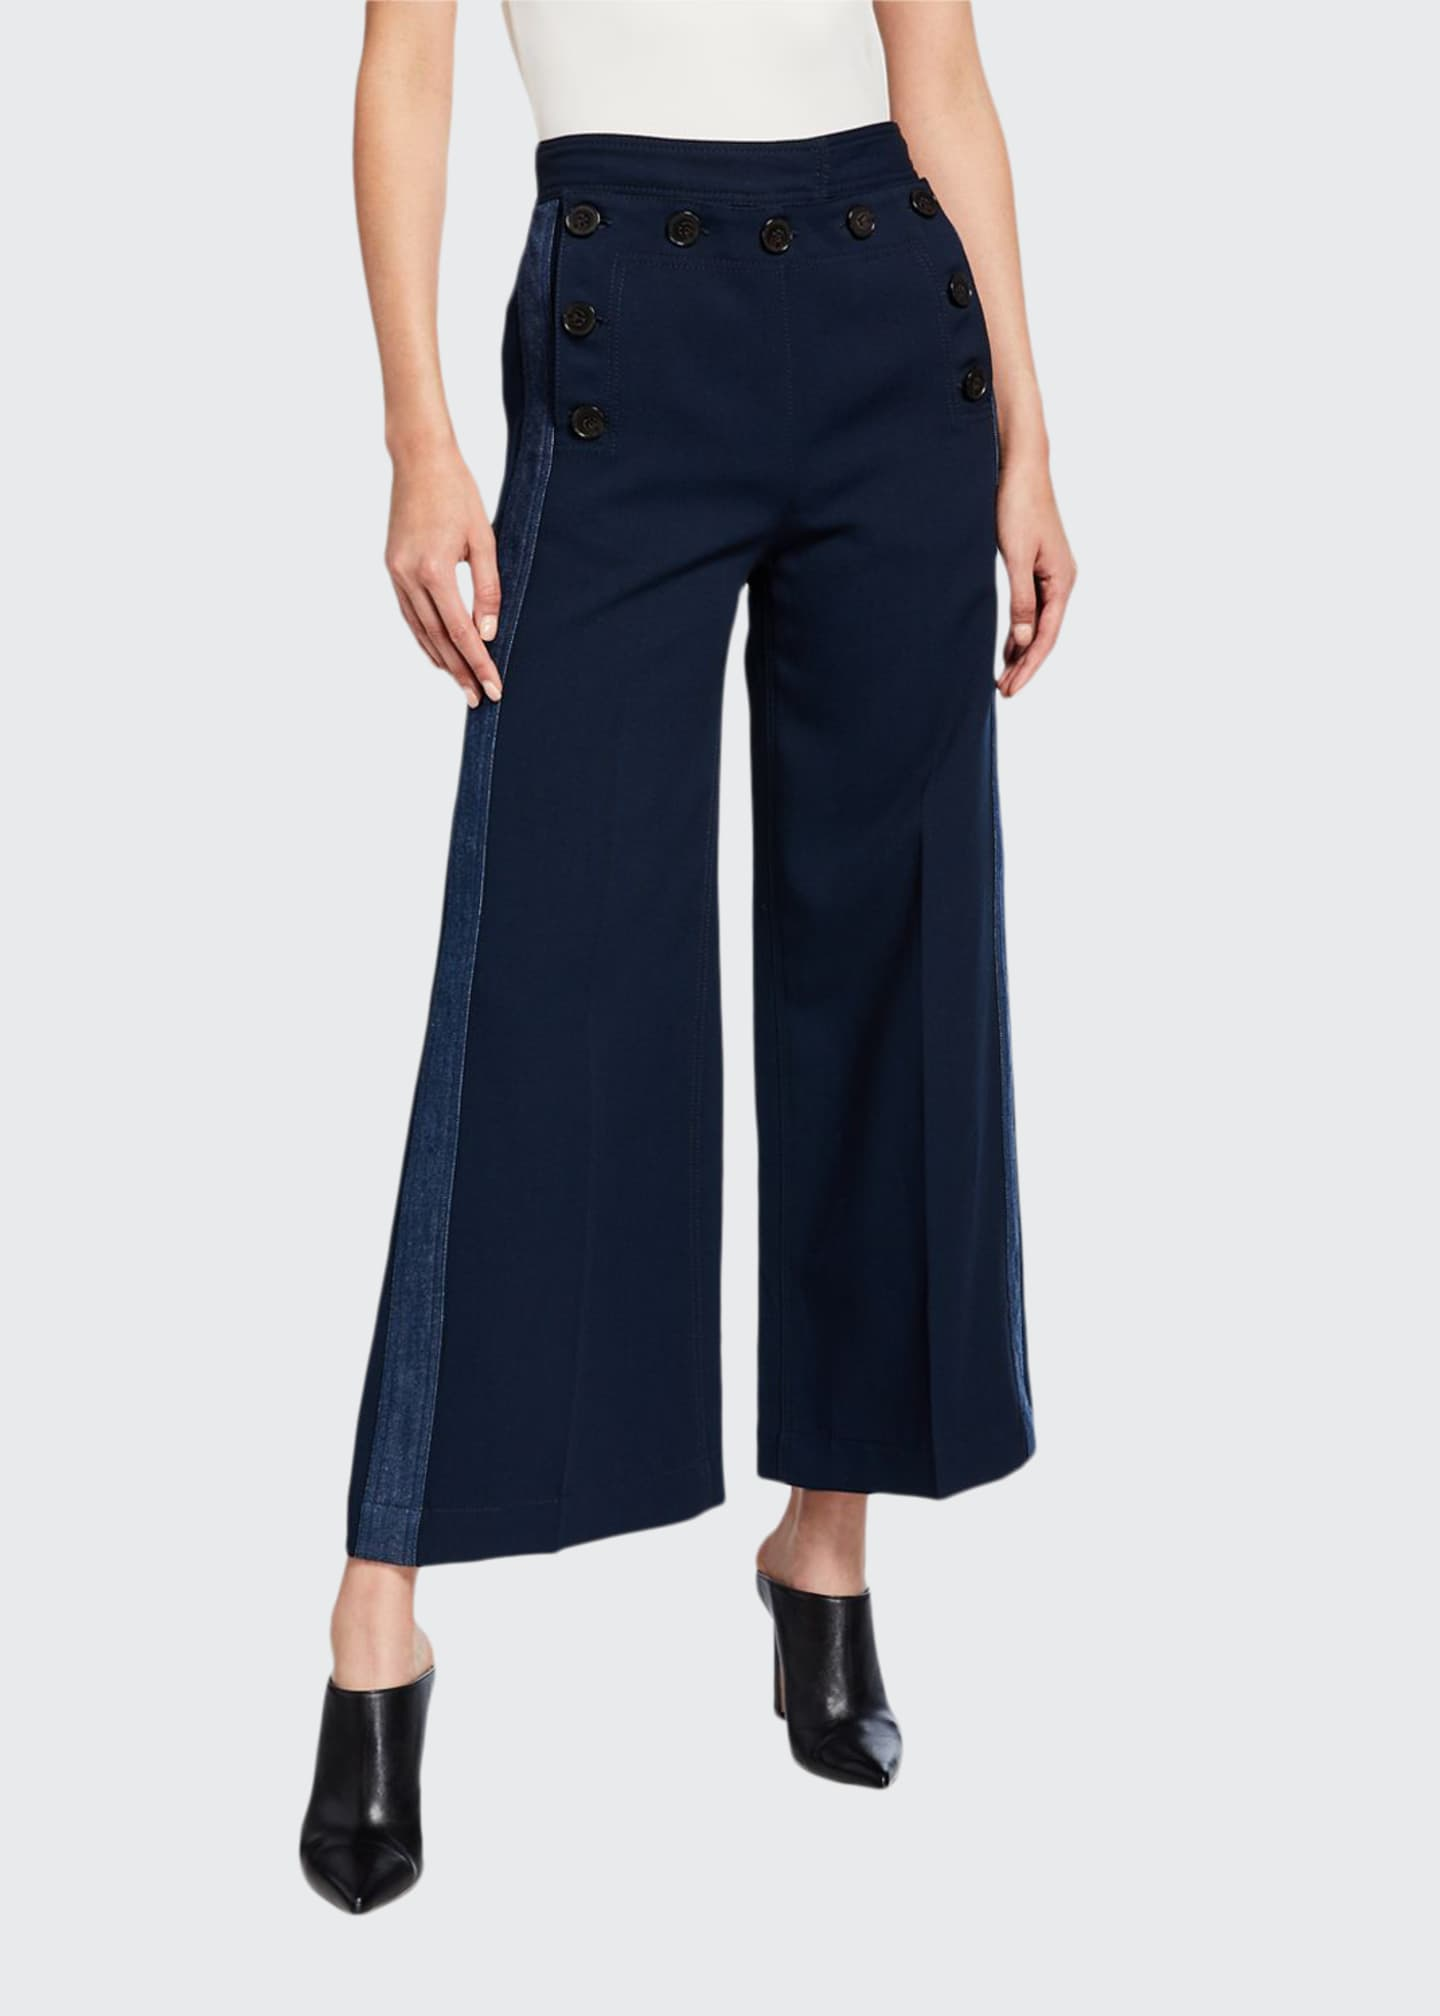 Derek Lam 10 Crosby Side-Stripe Culottes with Sailor